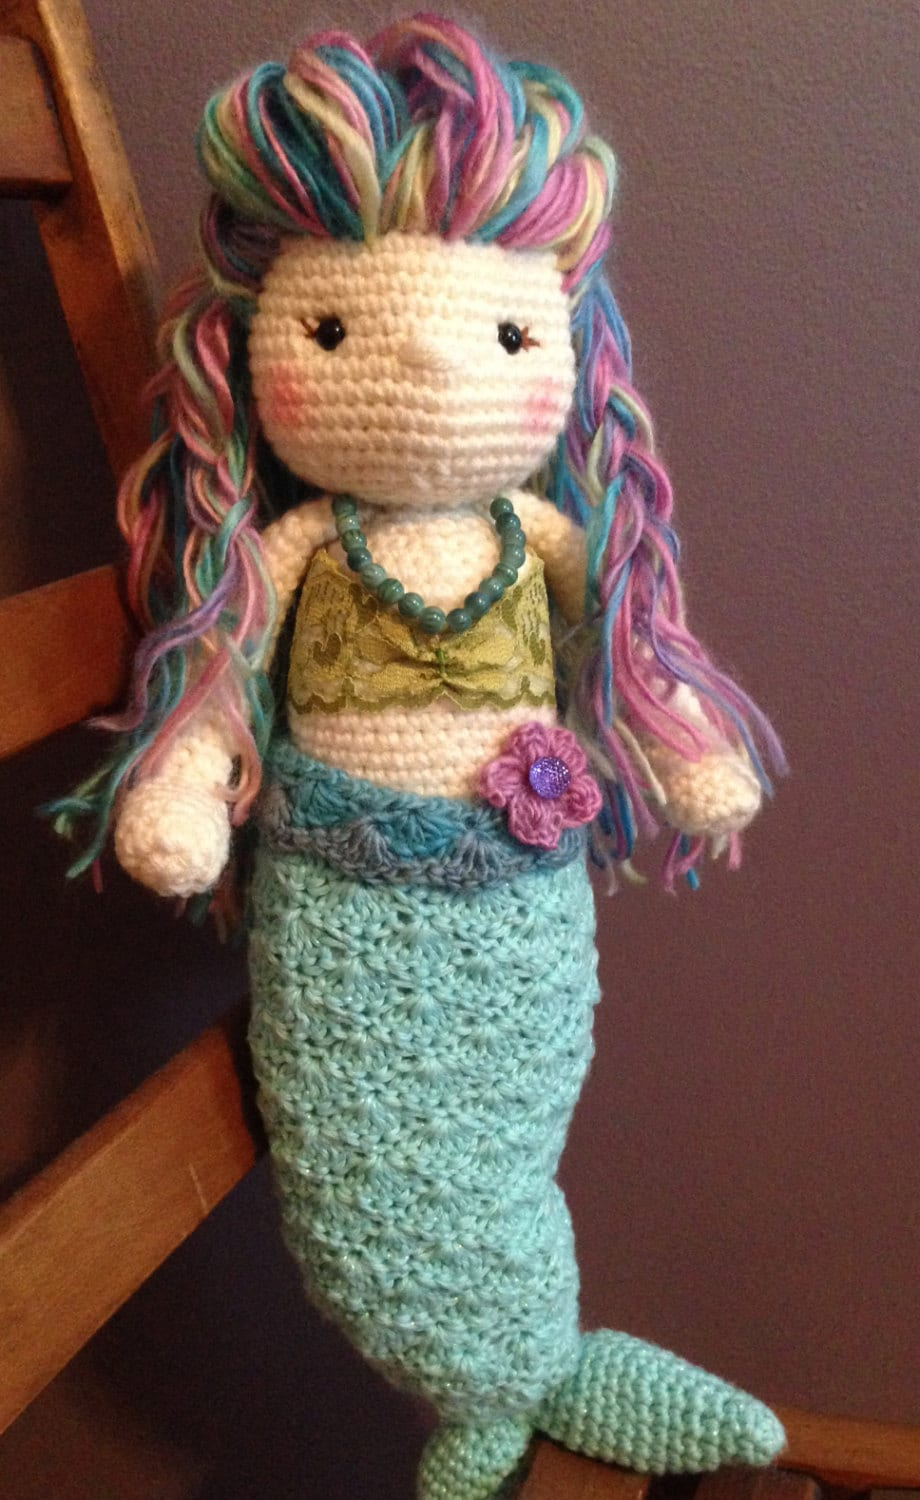 Crocheted Amigurumi Mermaid Doll Plush Plushie by ...